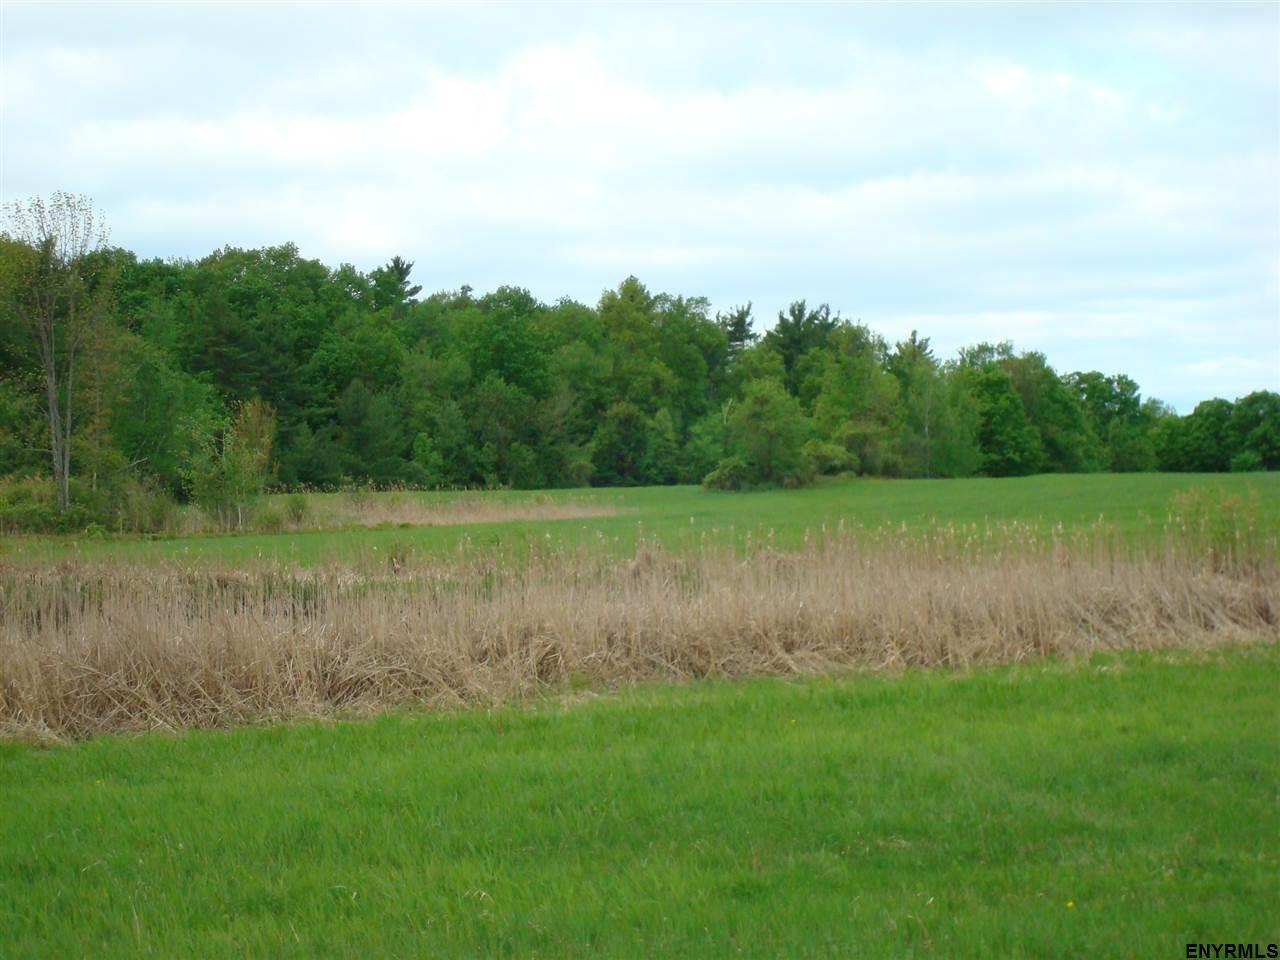 coeymans hollow milfs dating site Town parks town of coeymans the woods as well as a historic lime kiln dating back to the more information on this can be found at the following site.